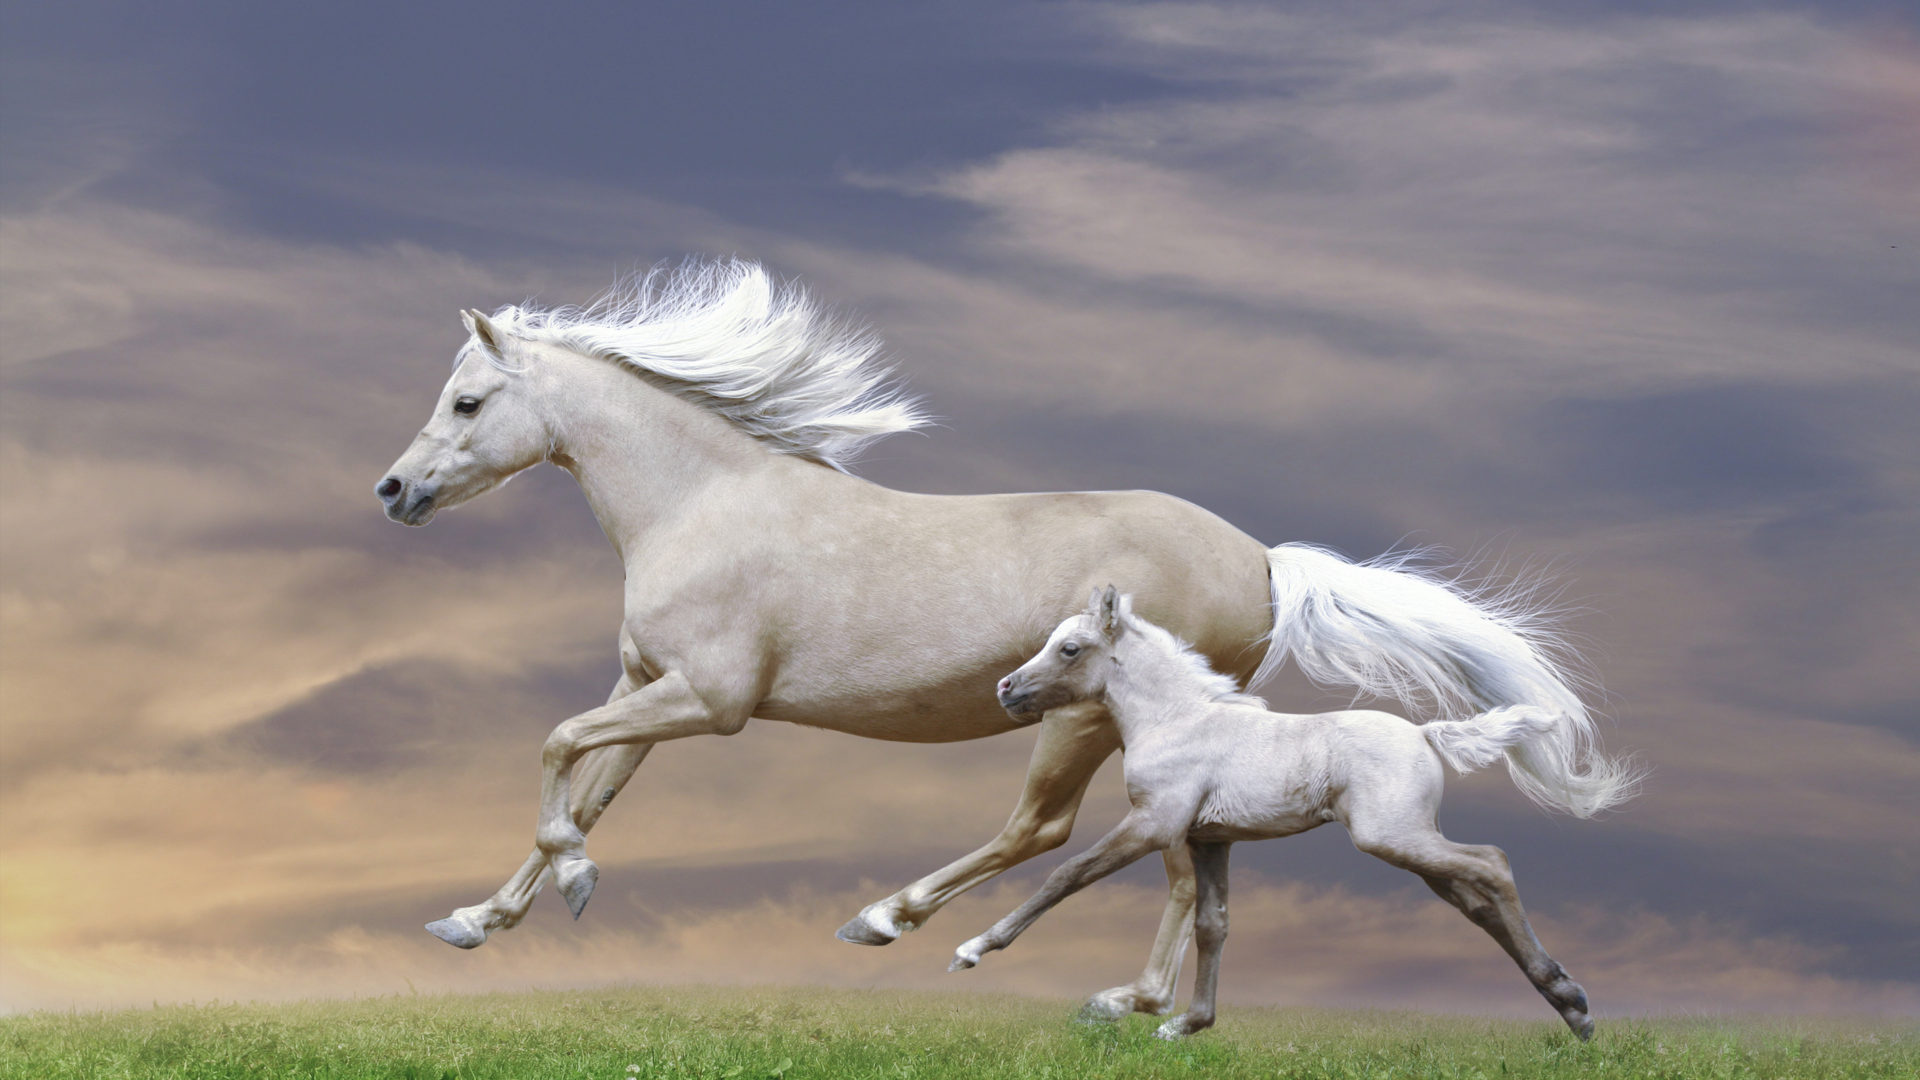 Cute Baby Horse Wallpaper White Mare And Foal Galloping Sunset Hd Wallpaper